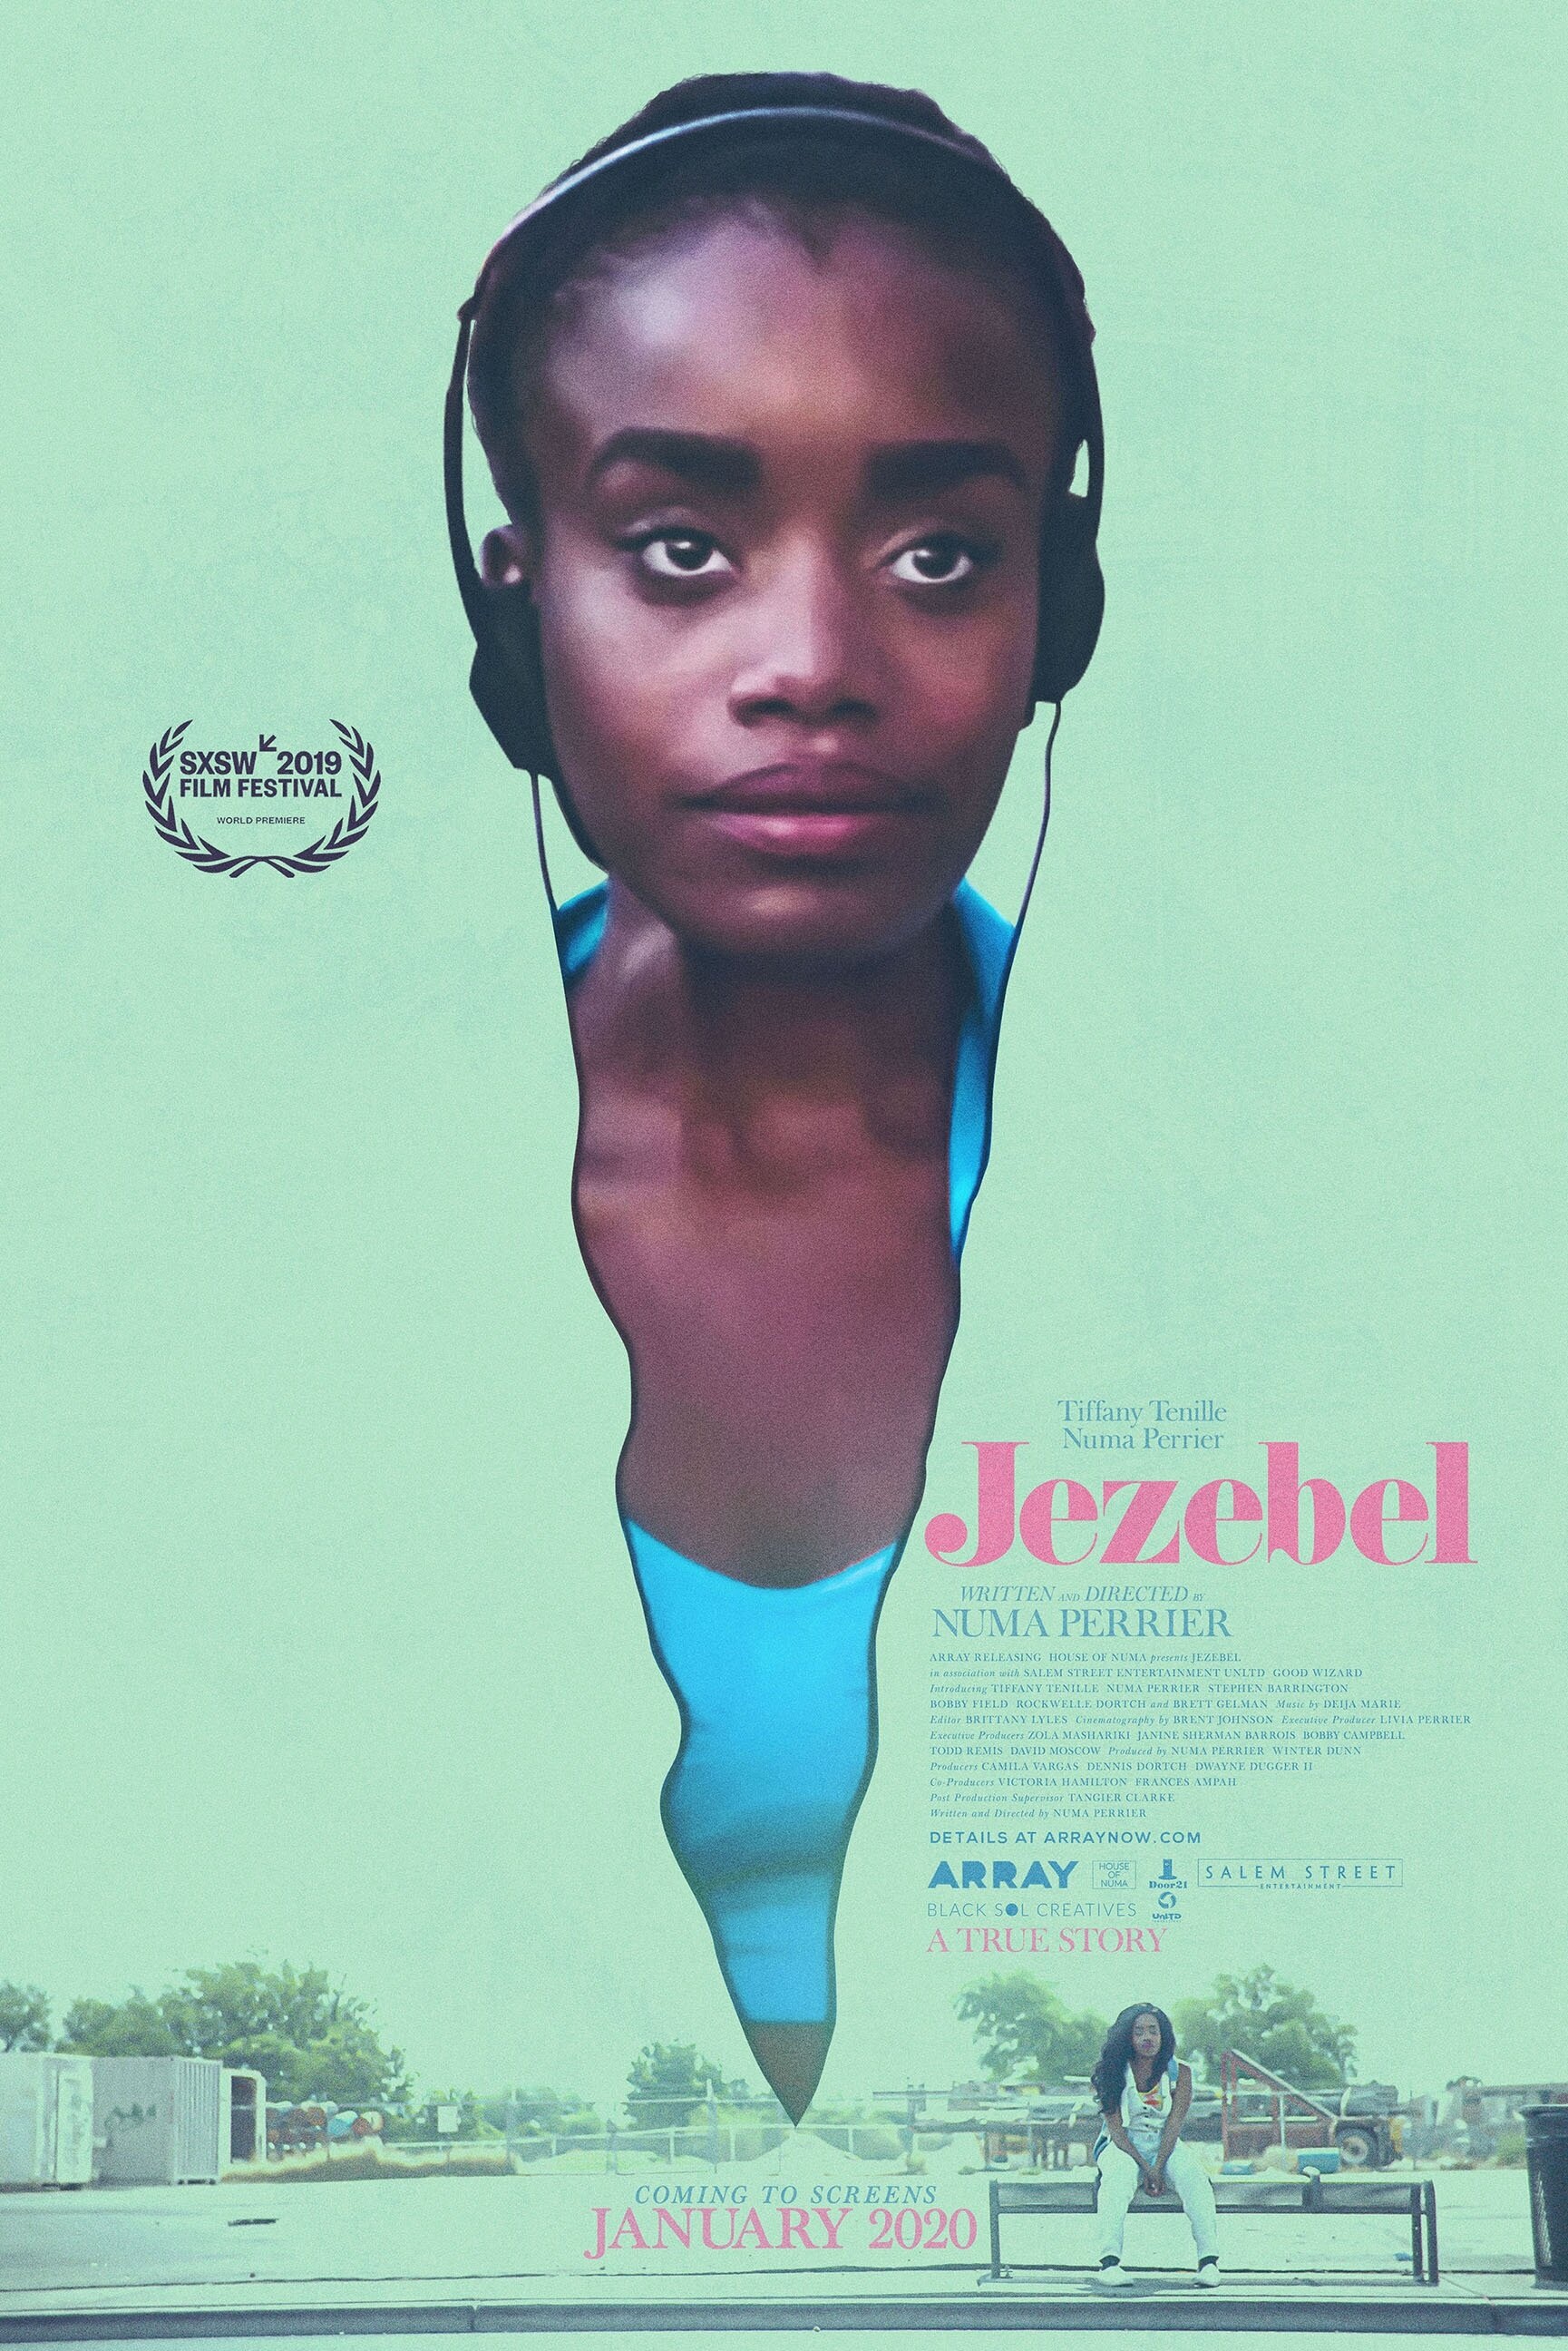 Jezebel Movie